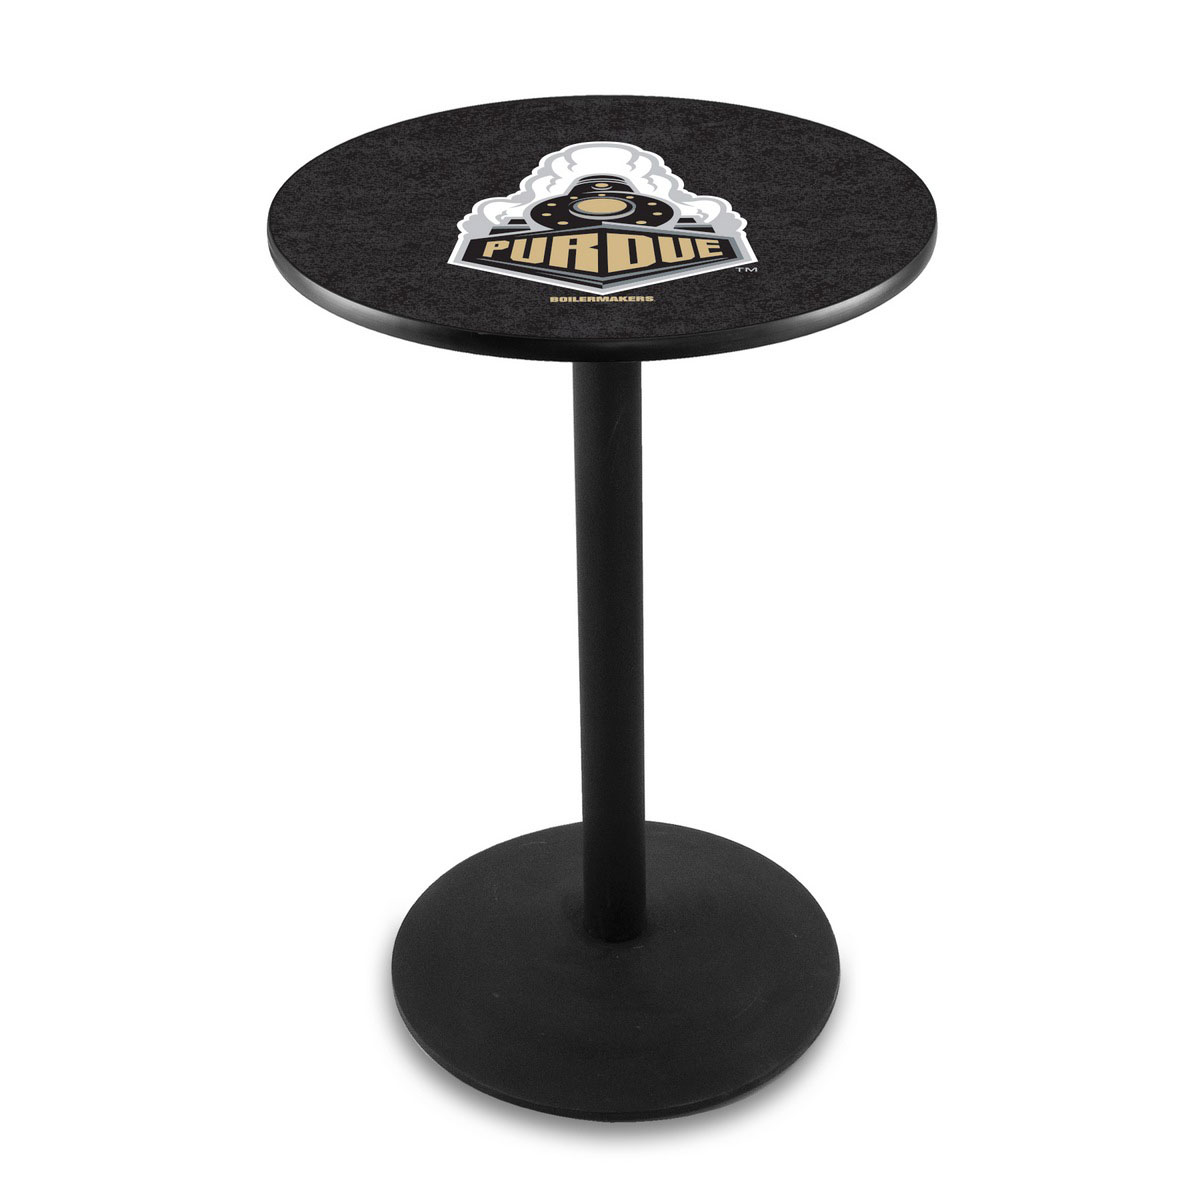 Excellent Purdue Logo Pub Bar Table Round Stand Product Photo